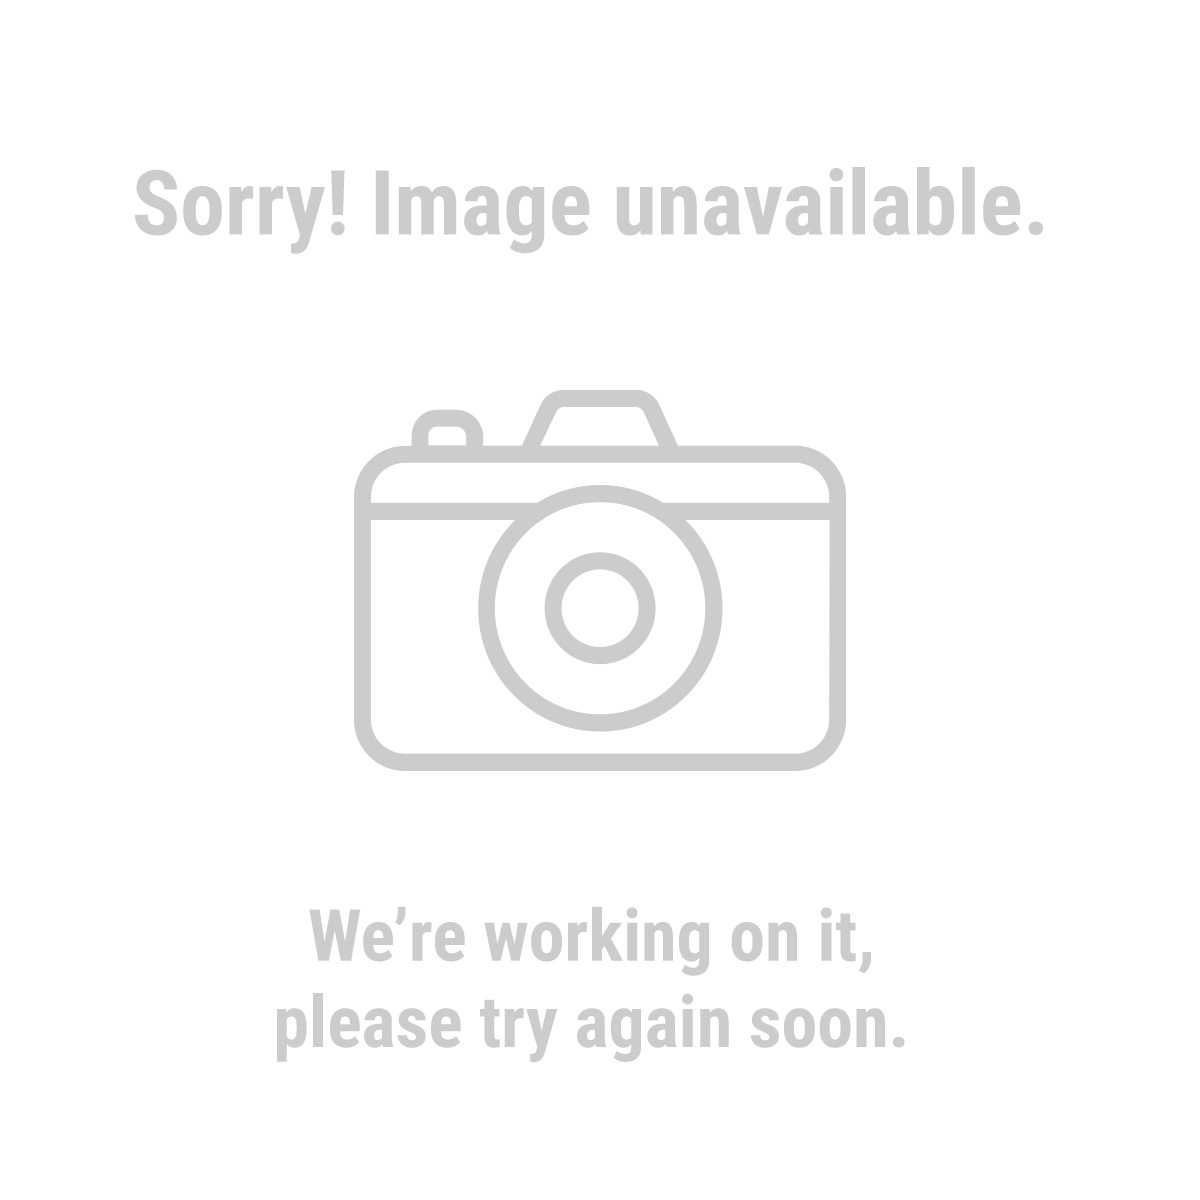 Predator Engines 68136 Predator 346cc OHV Horizontal Shaft Gas Engine - Certified for California